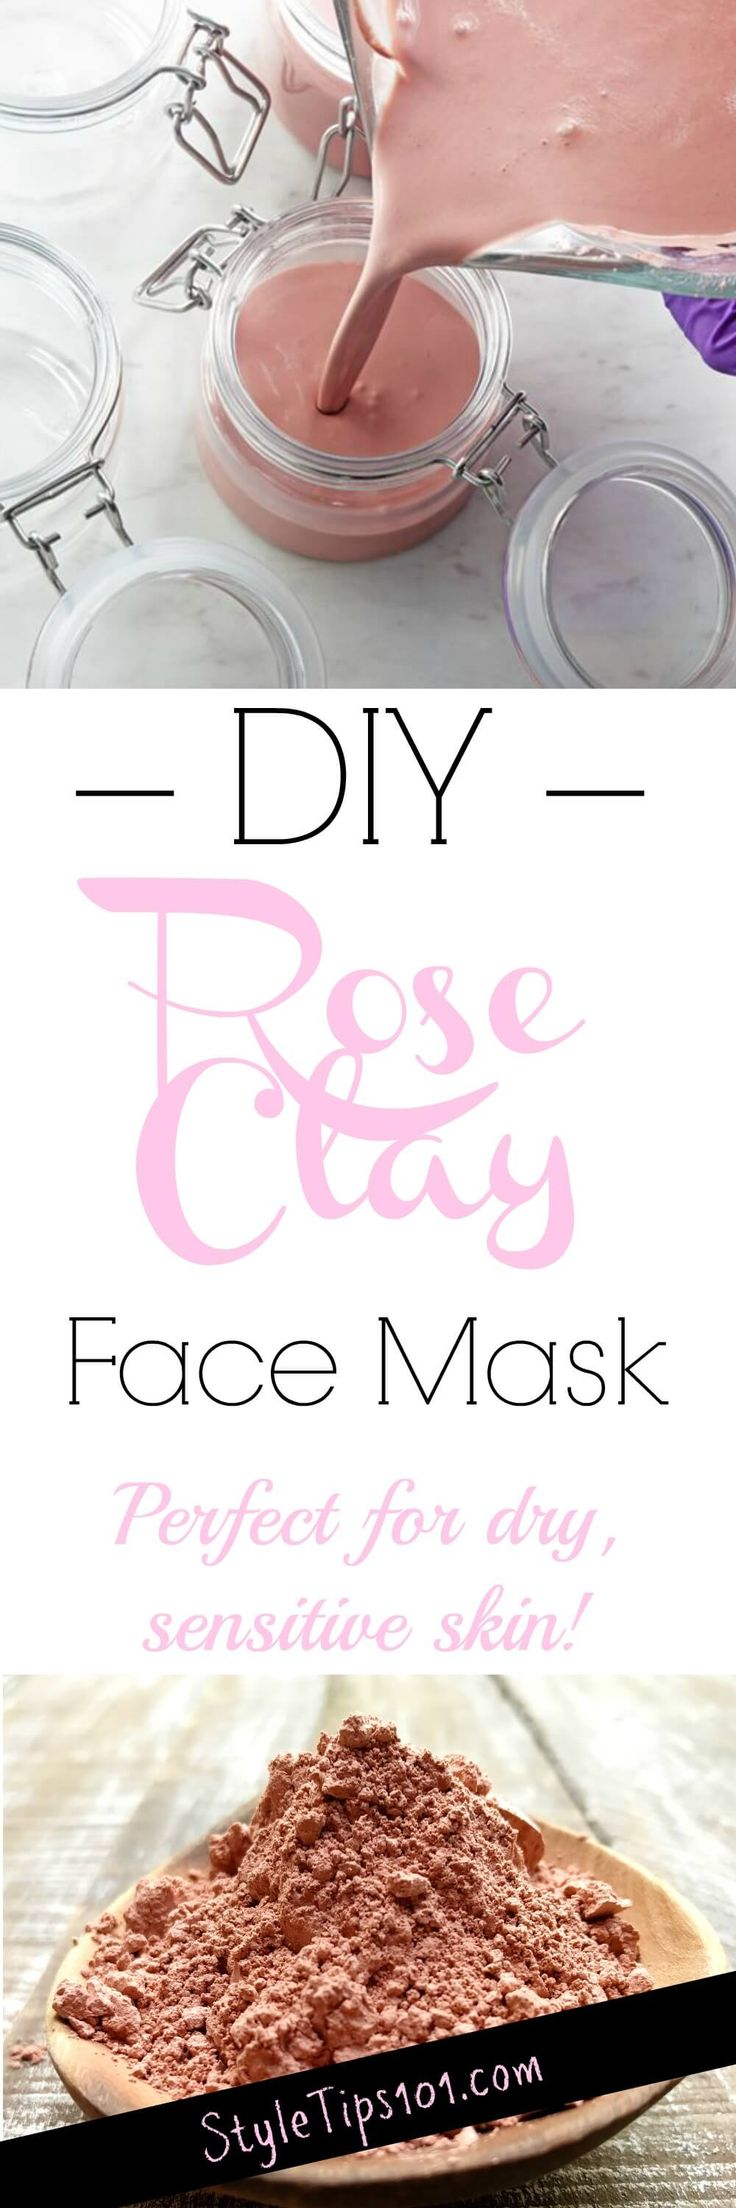 best 25+ rose clay ideas on pinterest | homemade scrub for face